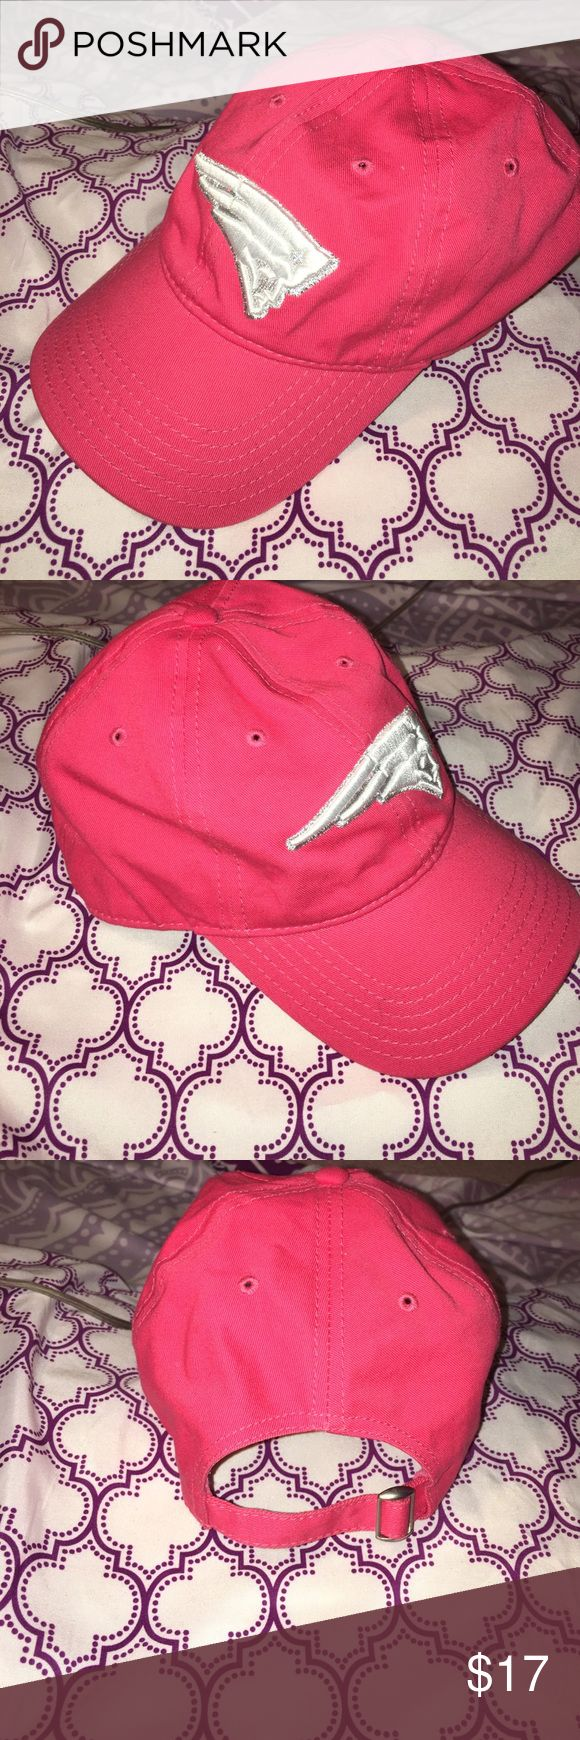 HOT PINK New England Patriots Hat. Adjustable size Perfect for the ultimate Patriots Fan that wants a feminine touch.  This is an NFL official merchandise hat 100% cotton and a one-size fits all, adjustable to fit your needs.  Received as a gift about 5 years ago and never wore it.  (Hats don't look good on me) For a bonus, this hat has a pull through spot on the back for your perfect ponytail.  True HOT PINK color with white/silver an Official Patriots logo.  Enjoy while you're cheering on…